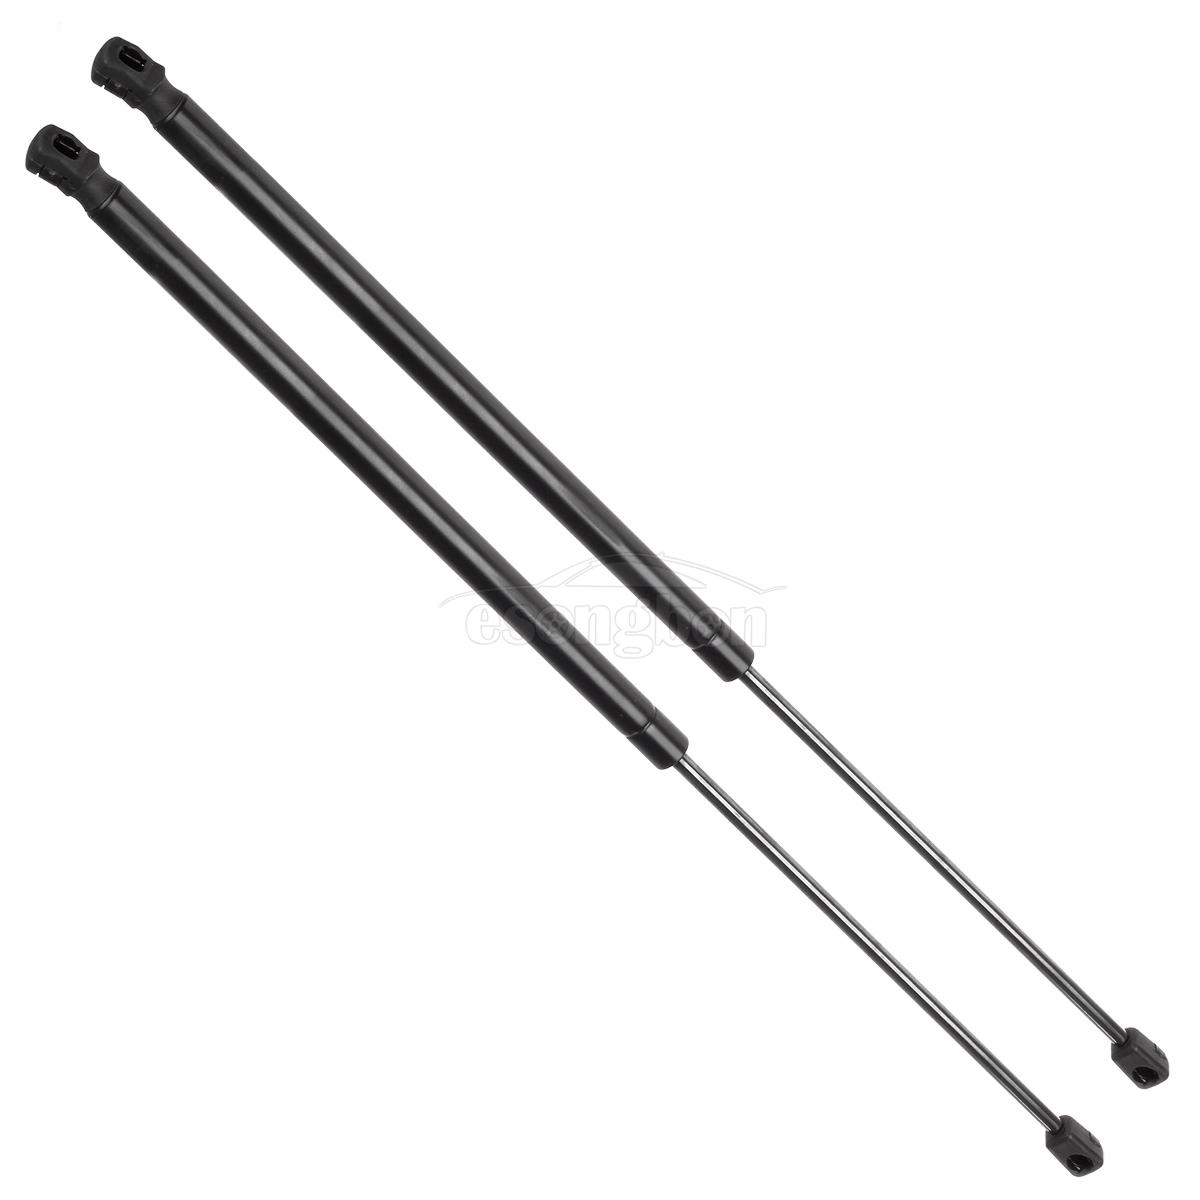 2 Rear Hatch Gas Charged Lift Support Replacement Set For